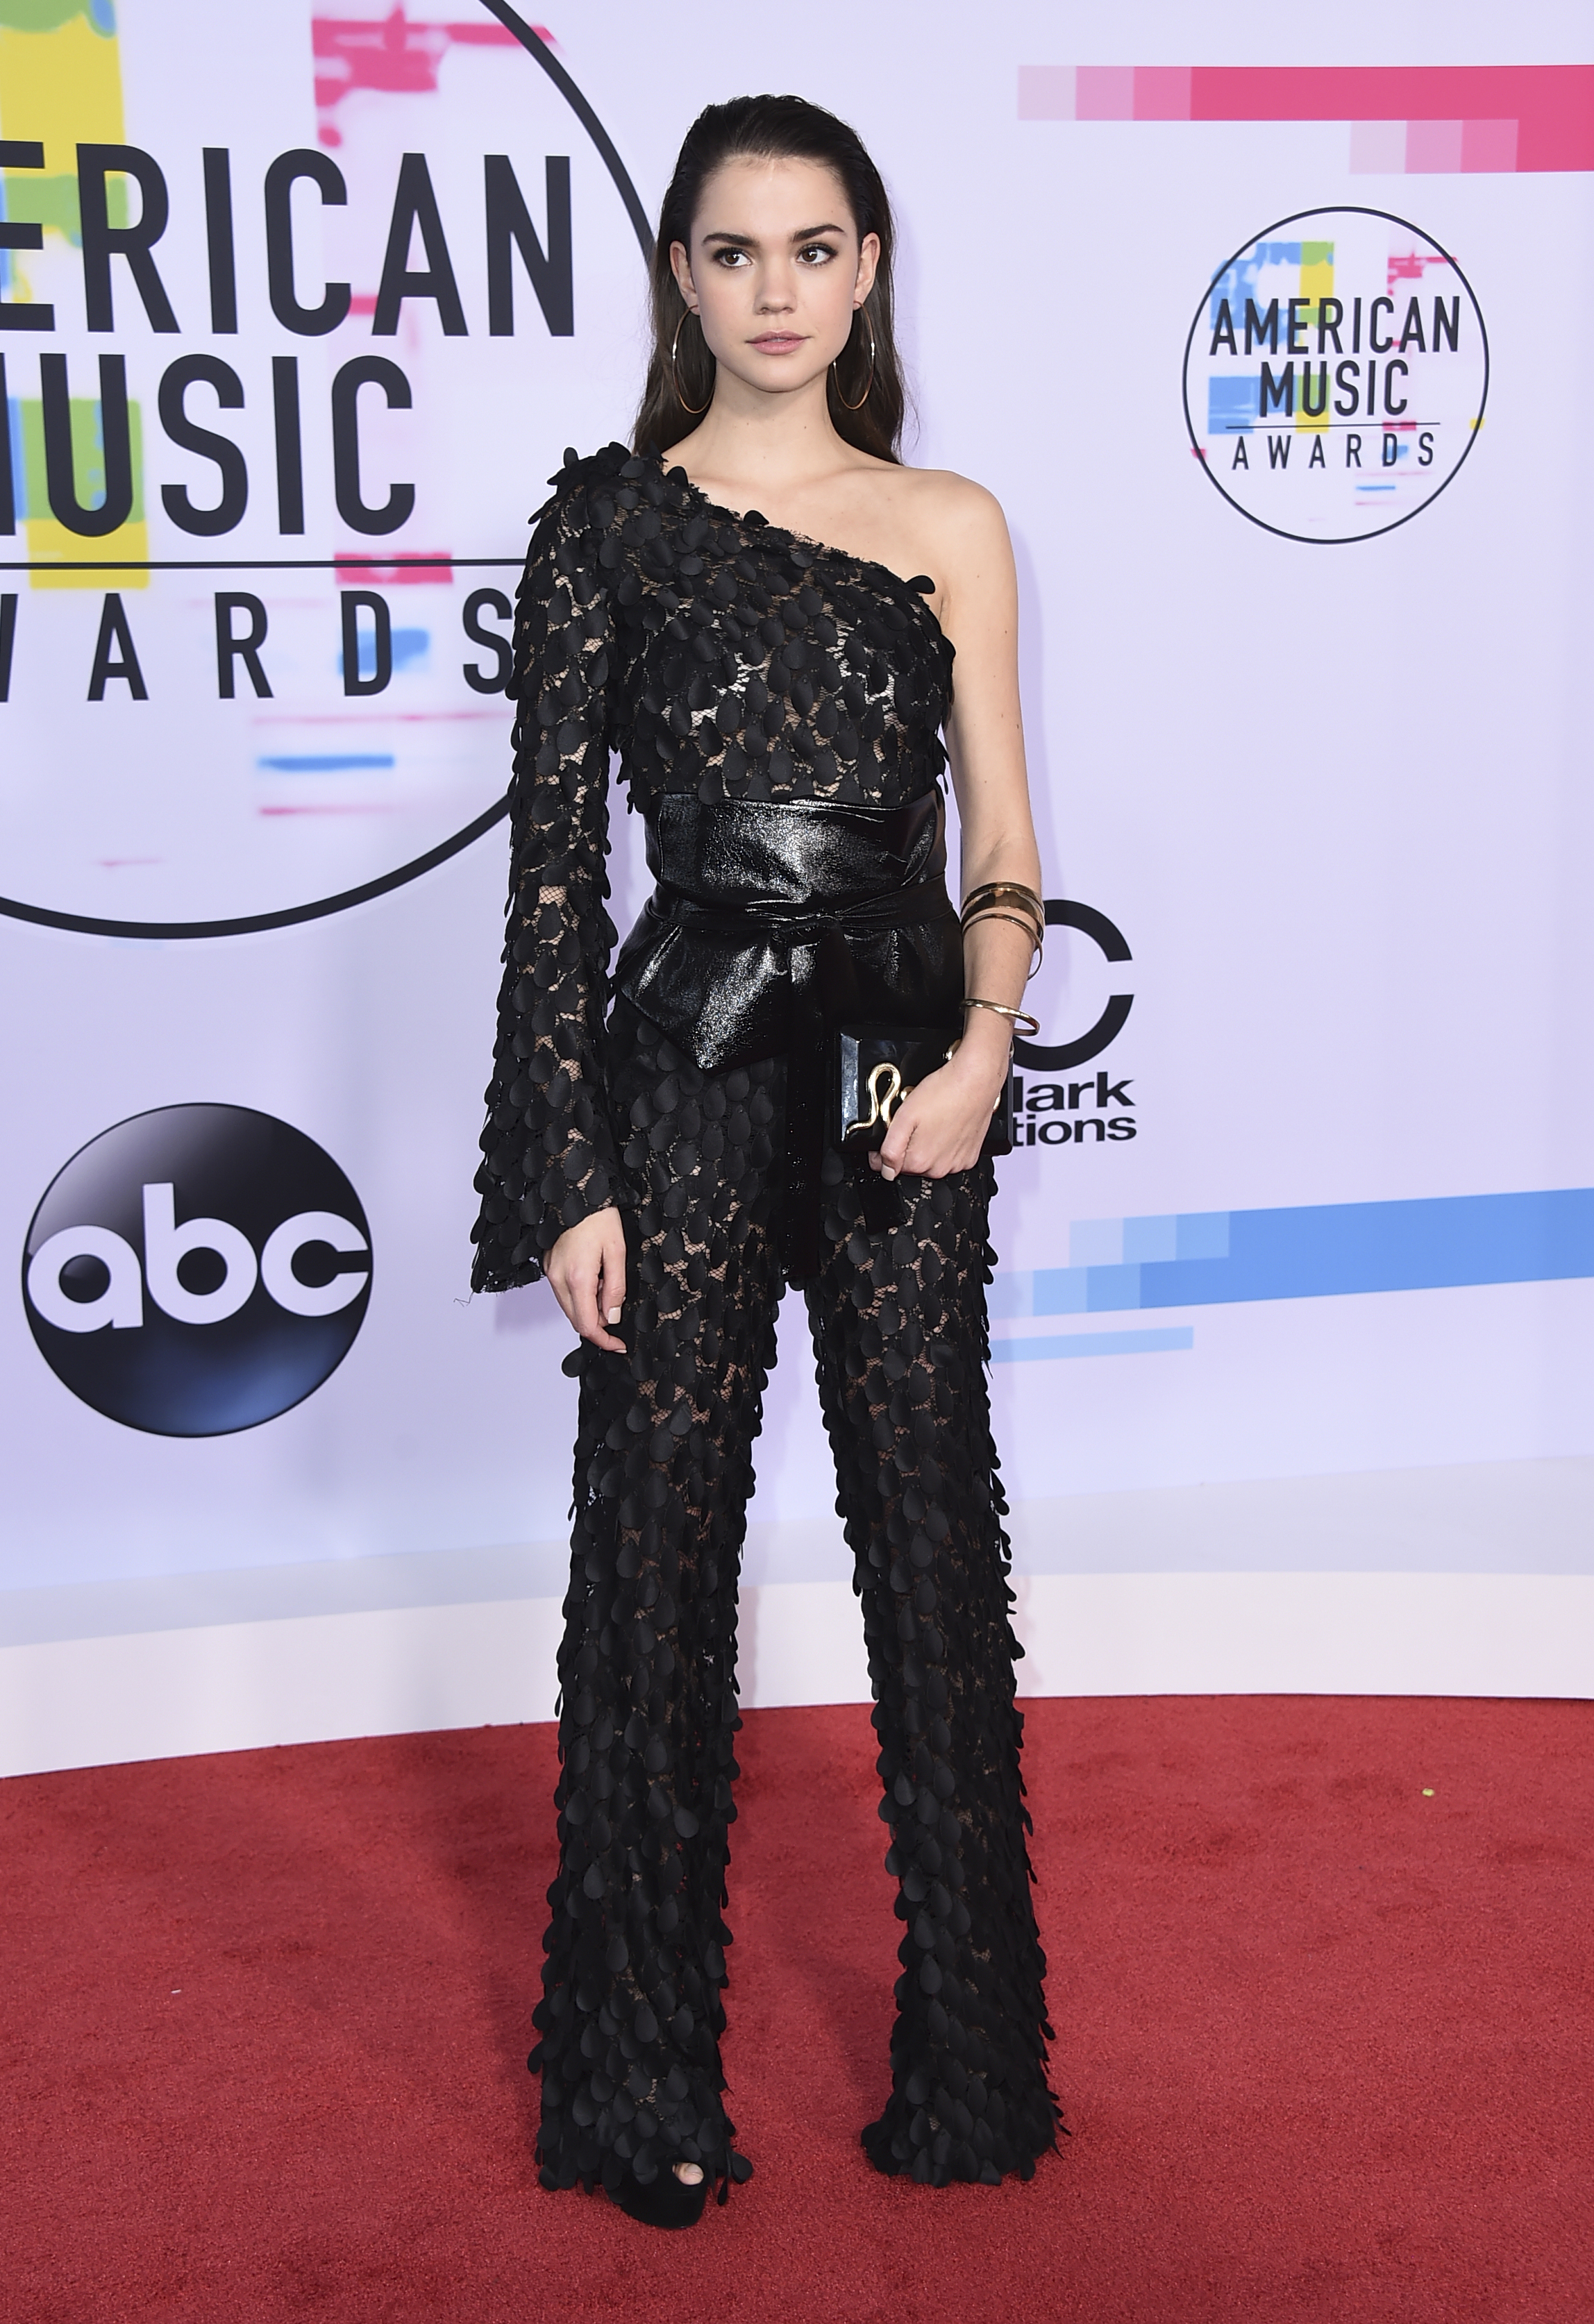 <div class='meta'><div class='origin-logo' data-origin='none'></div><span class='caption-text' data-credit='Jordan Strauss/Invision/AP'>Maia Mitchell arrives at the American Music Awards at the Microsoft Theater on Sunday, Nov. 19, 2017, in Los Angeles.</span></div>